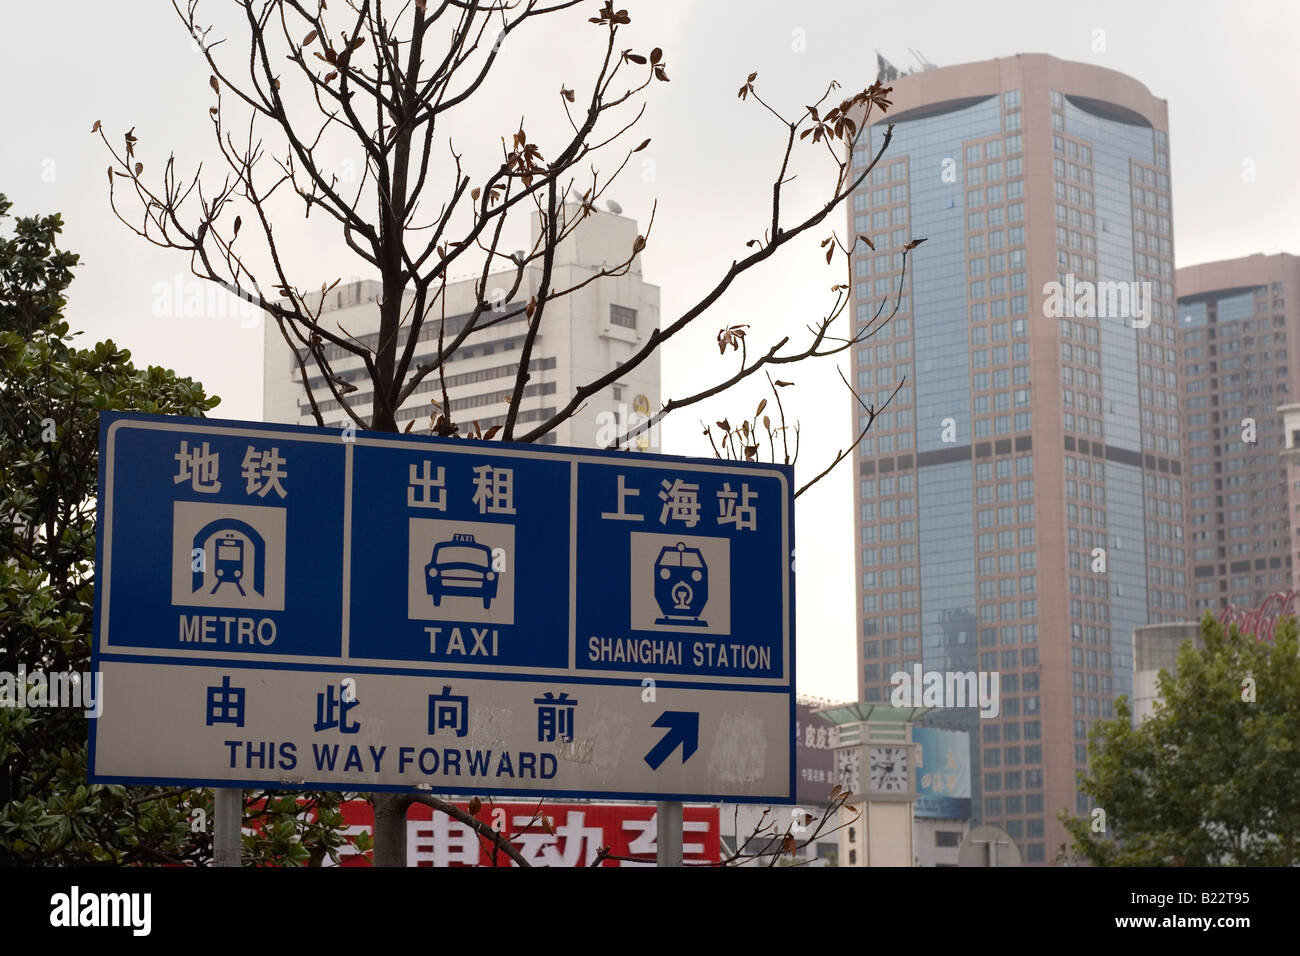 Central Shanghai. A sign for transport methods is seen in the foreground and a skyscraper can be seen to the right - Stock Image